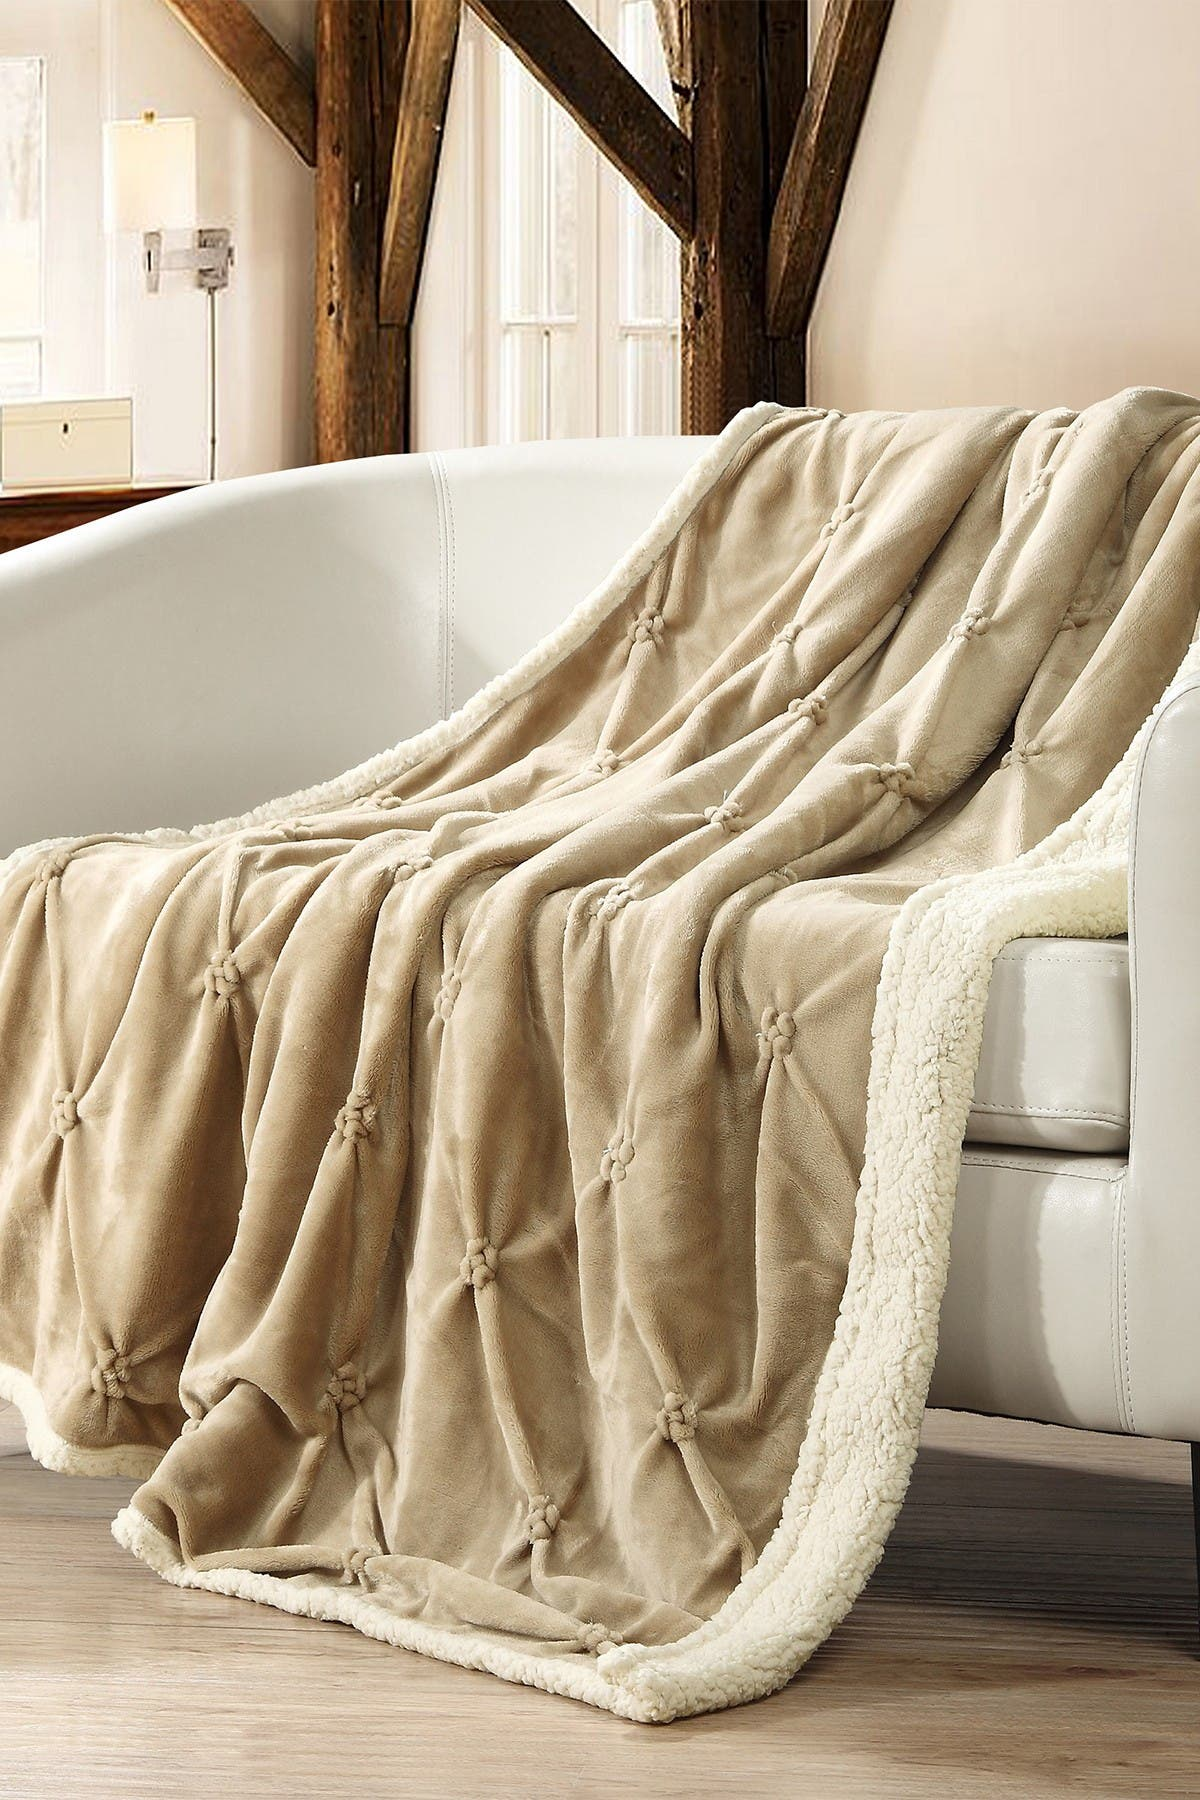 Image of Chic Home Bedding Caracas Pinch Pleated Faux Shearling Lined Throw Blanket - Beige